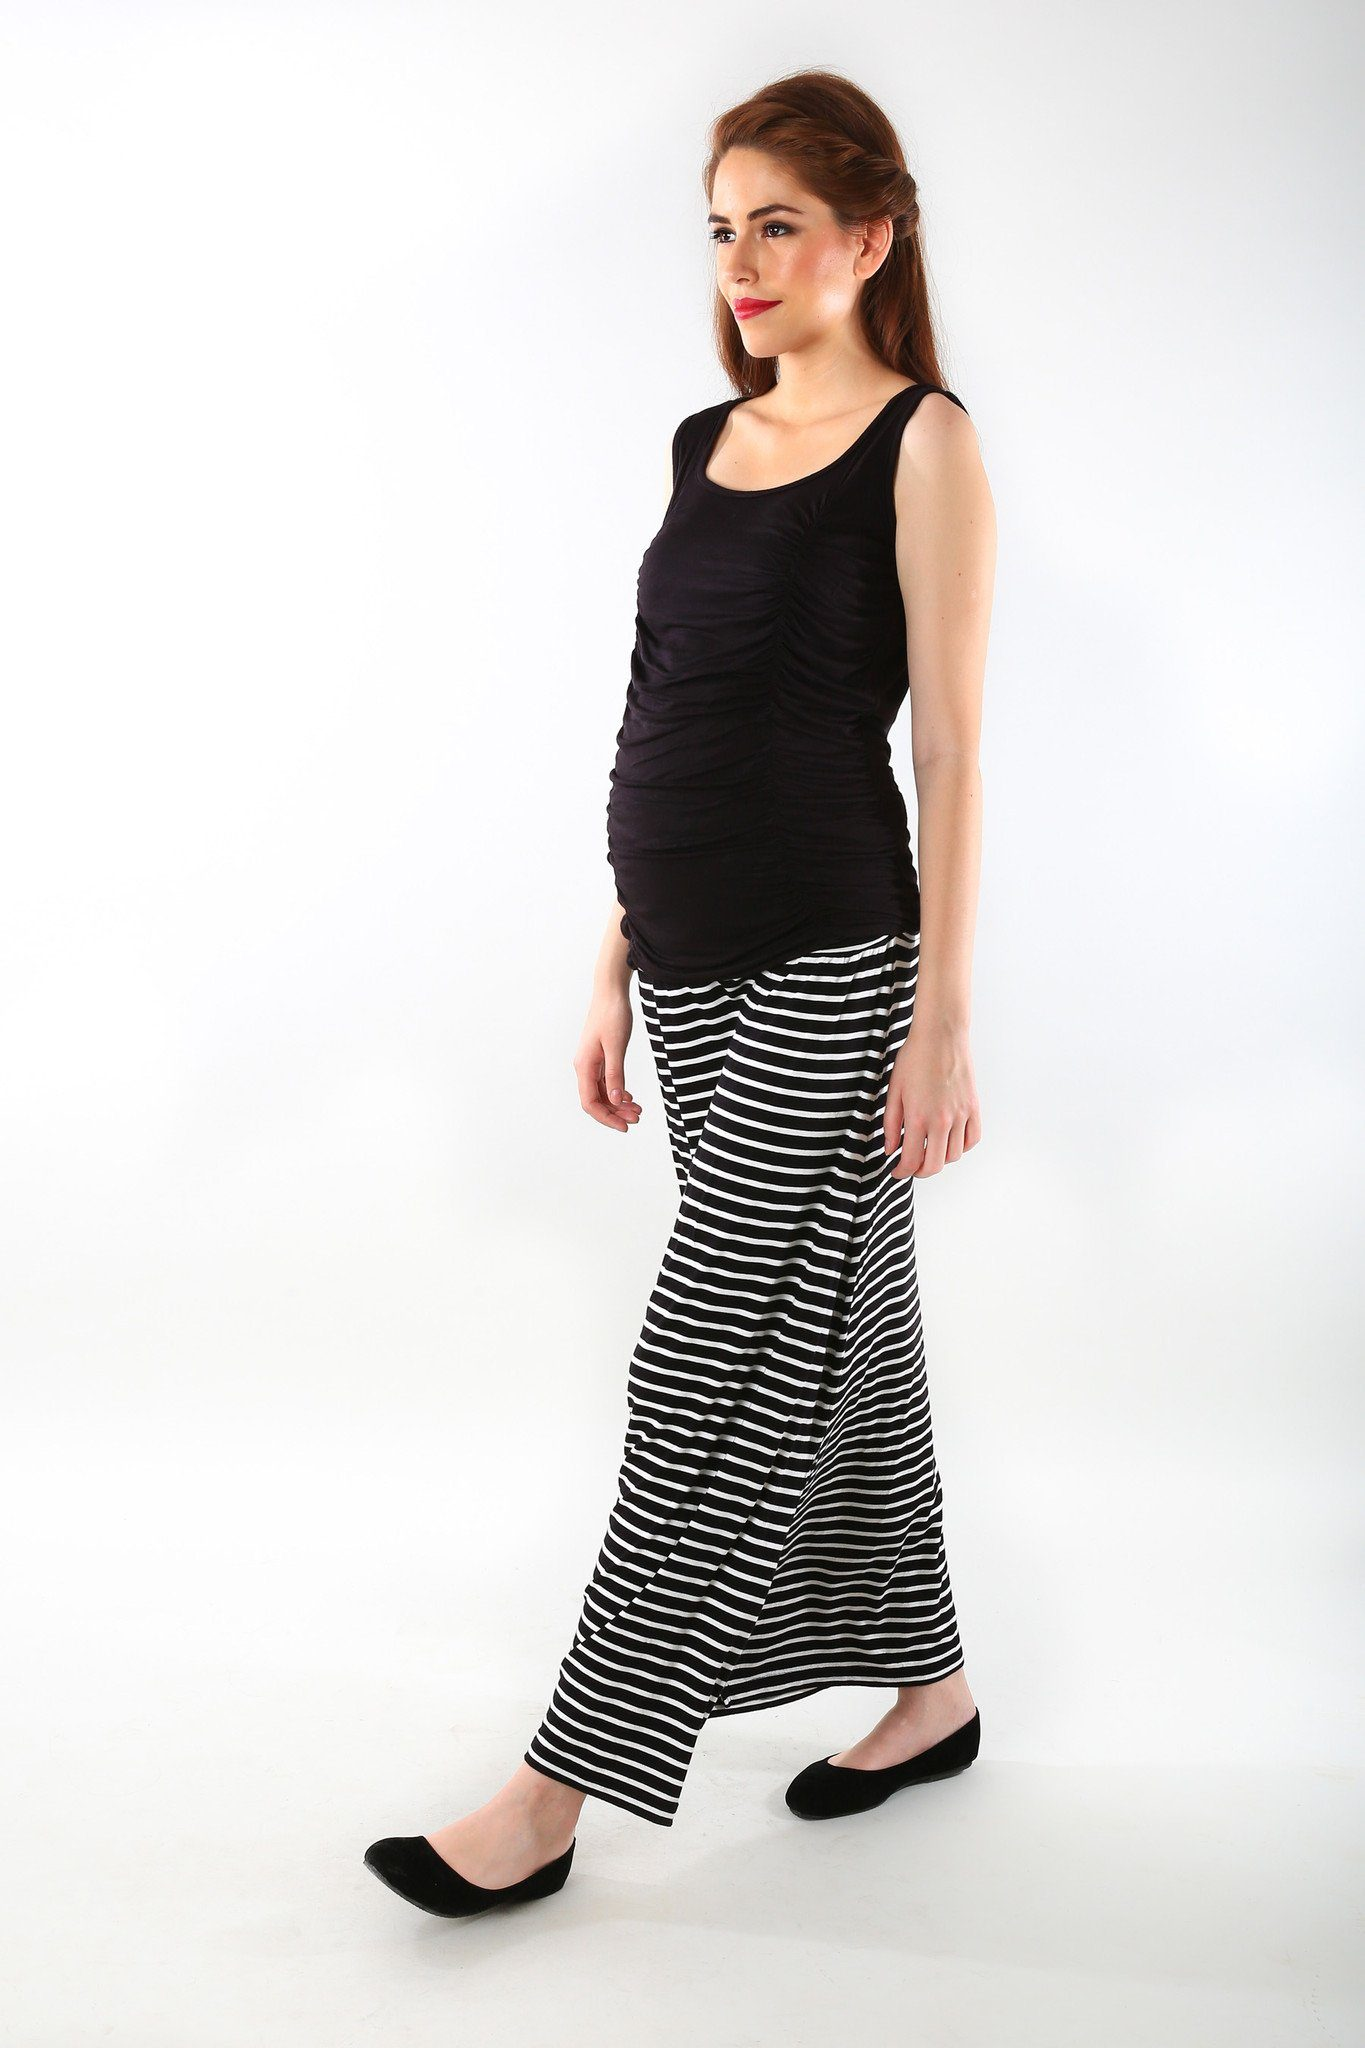 Striped A-Line Maternity Skirt - MOMZJOY.COM - 2